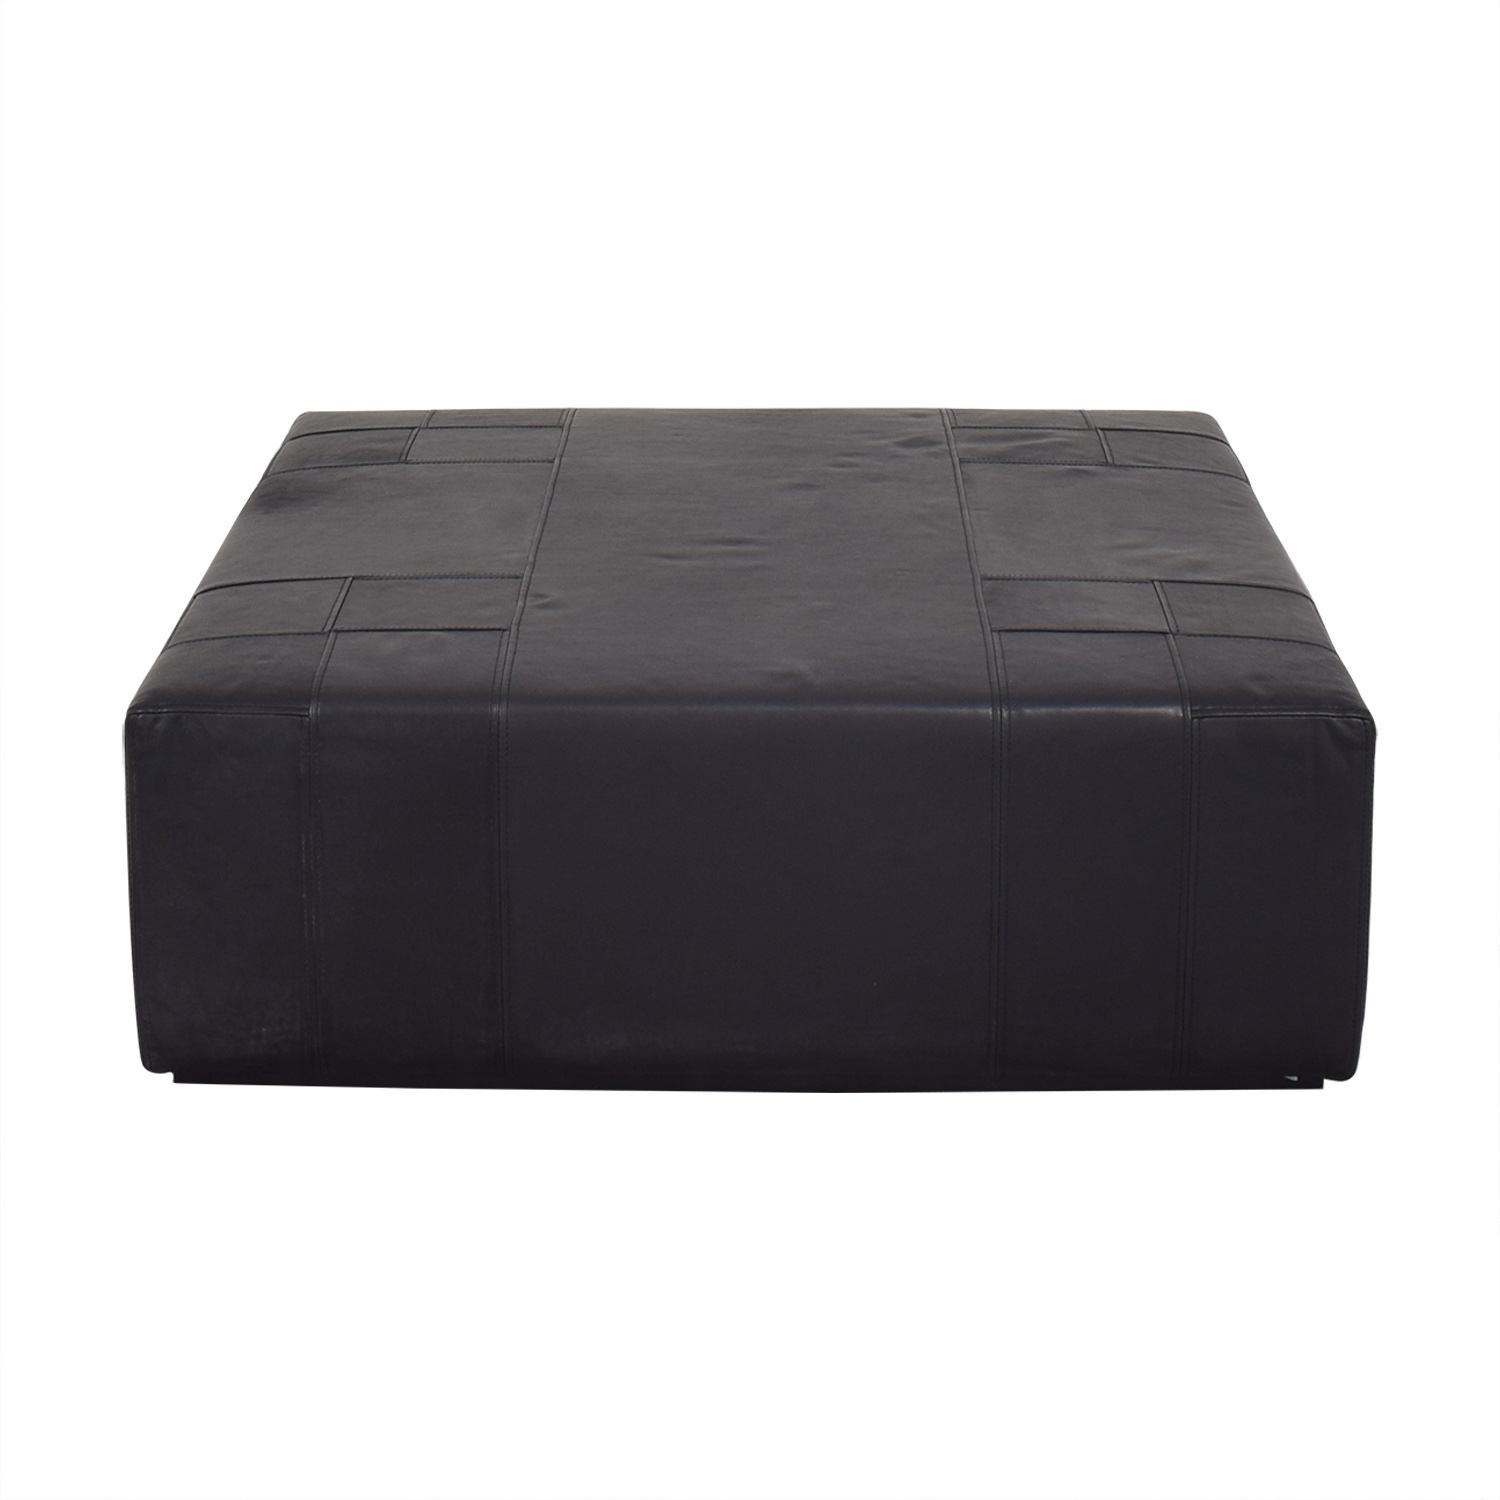 ABC Carpet & Home ABC Carpet & Home Square Ottoman discount